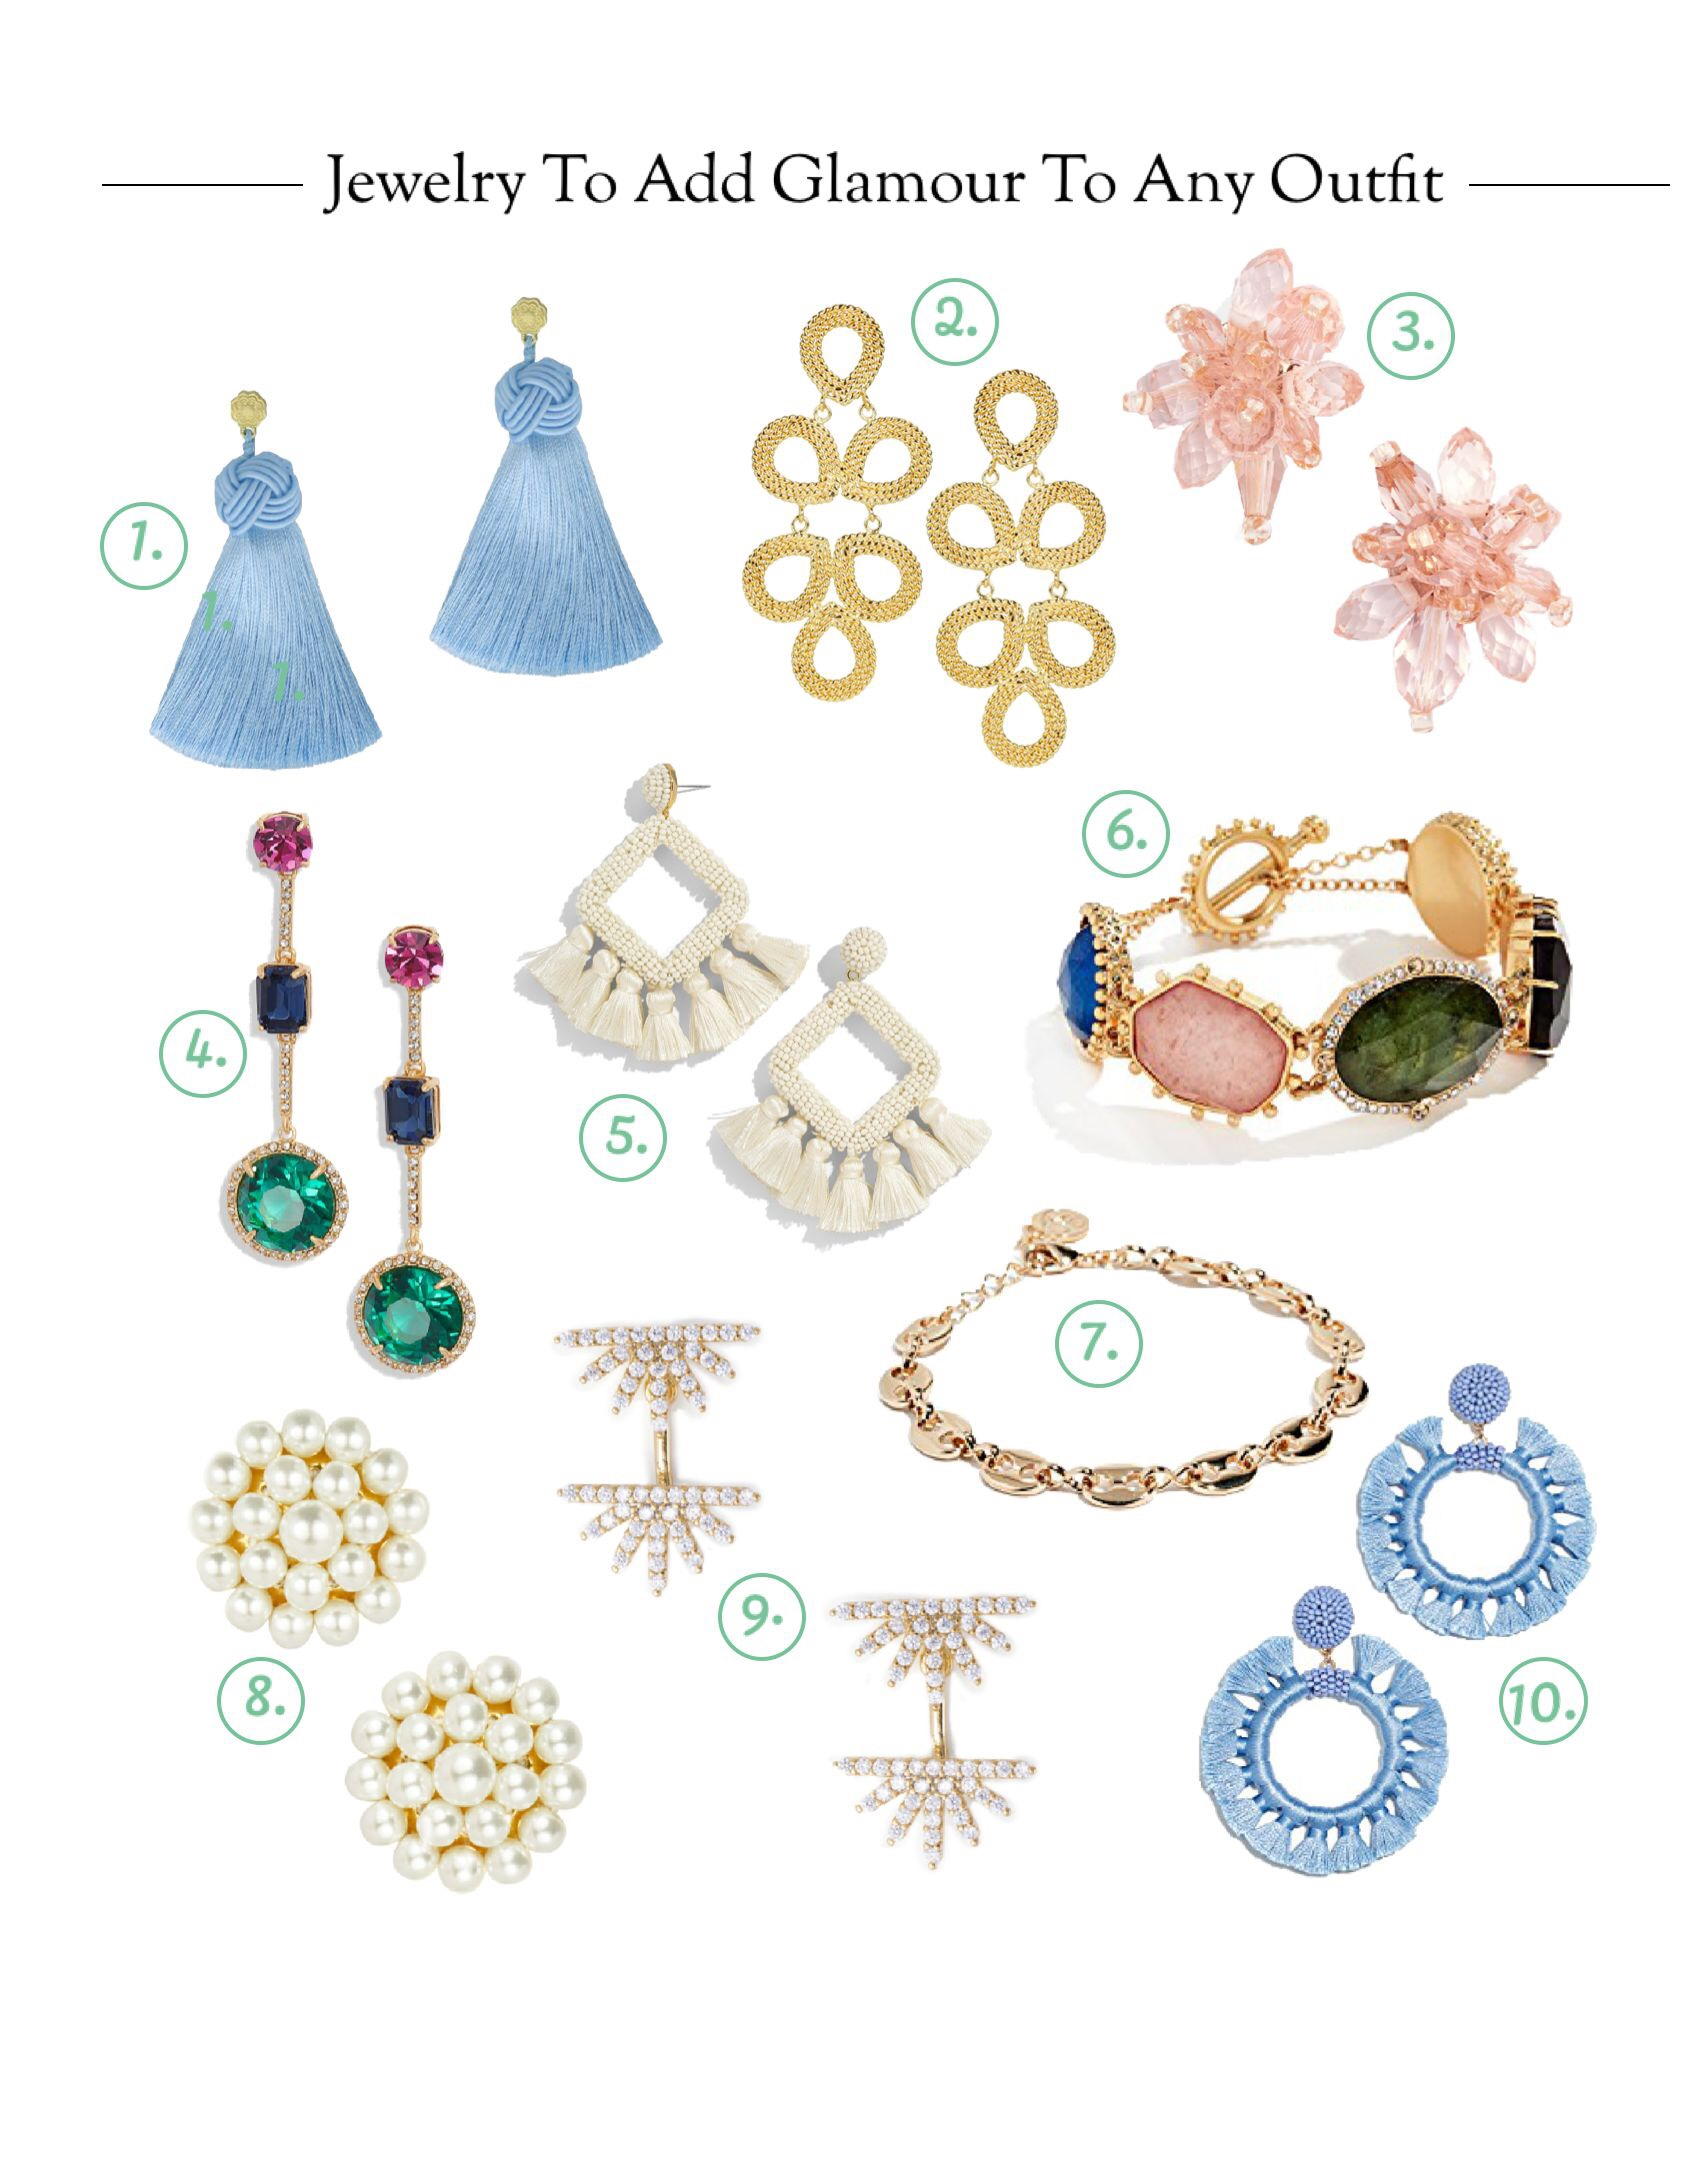 Jewelry To Add Glamour to Any Outfit